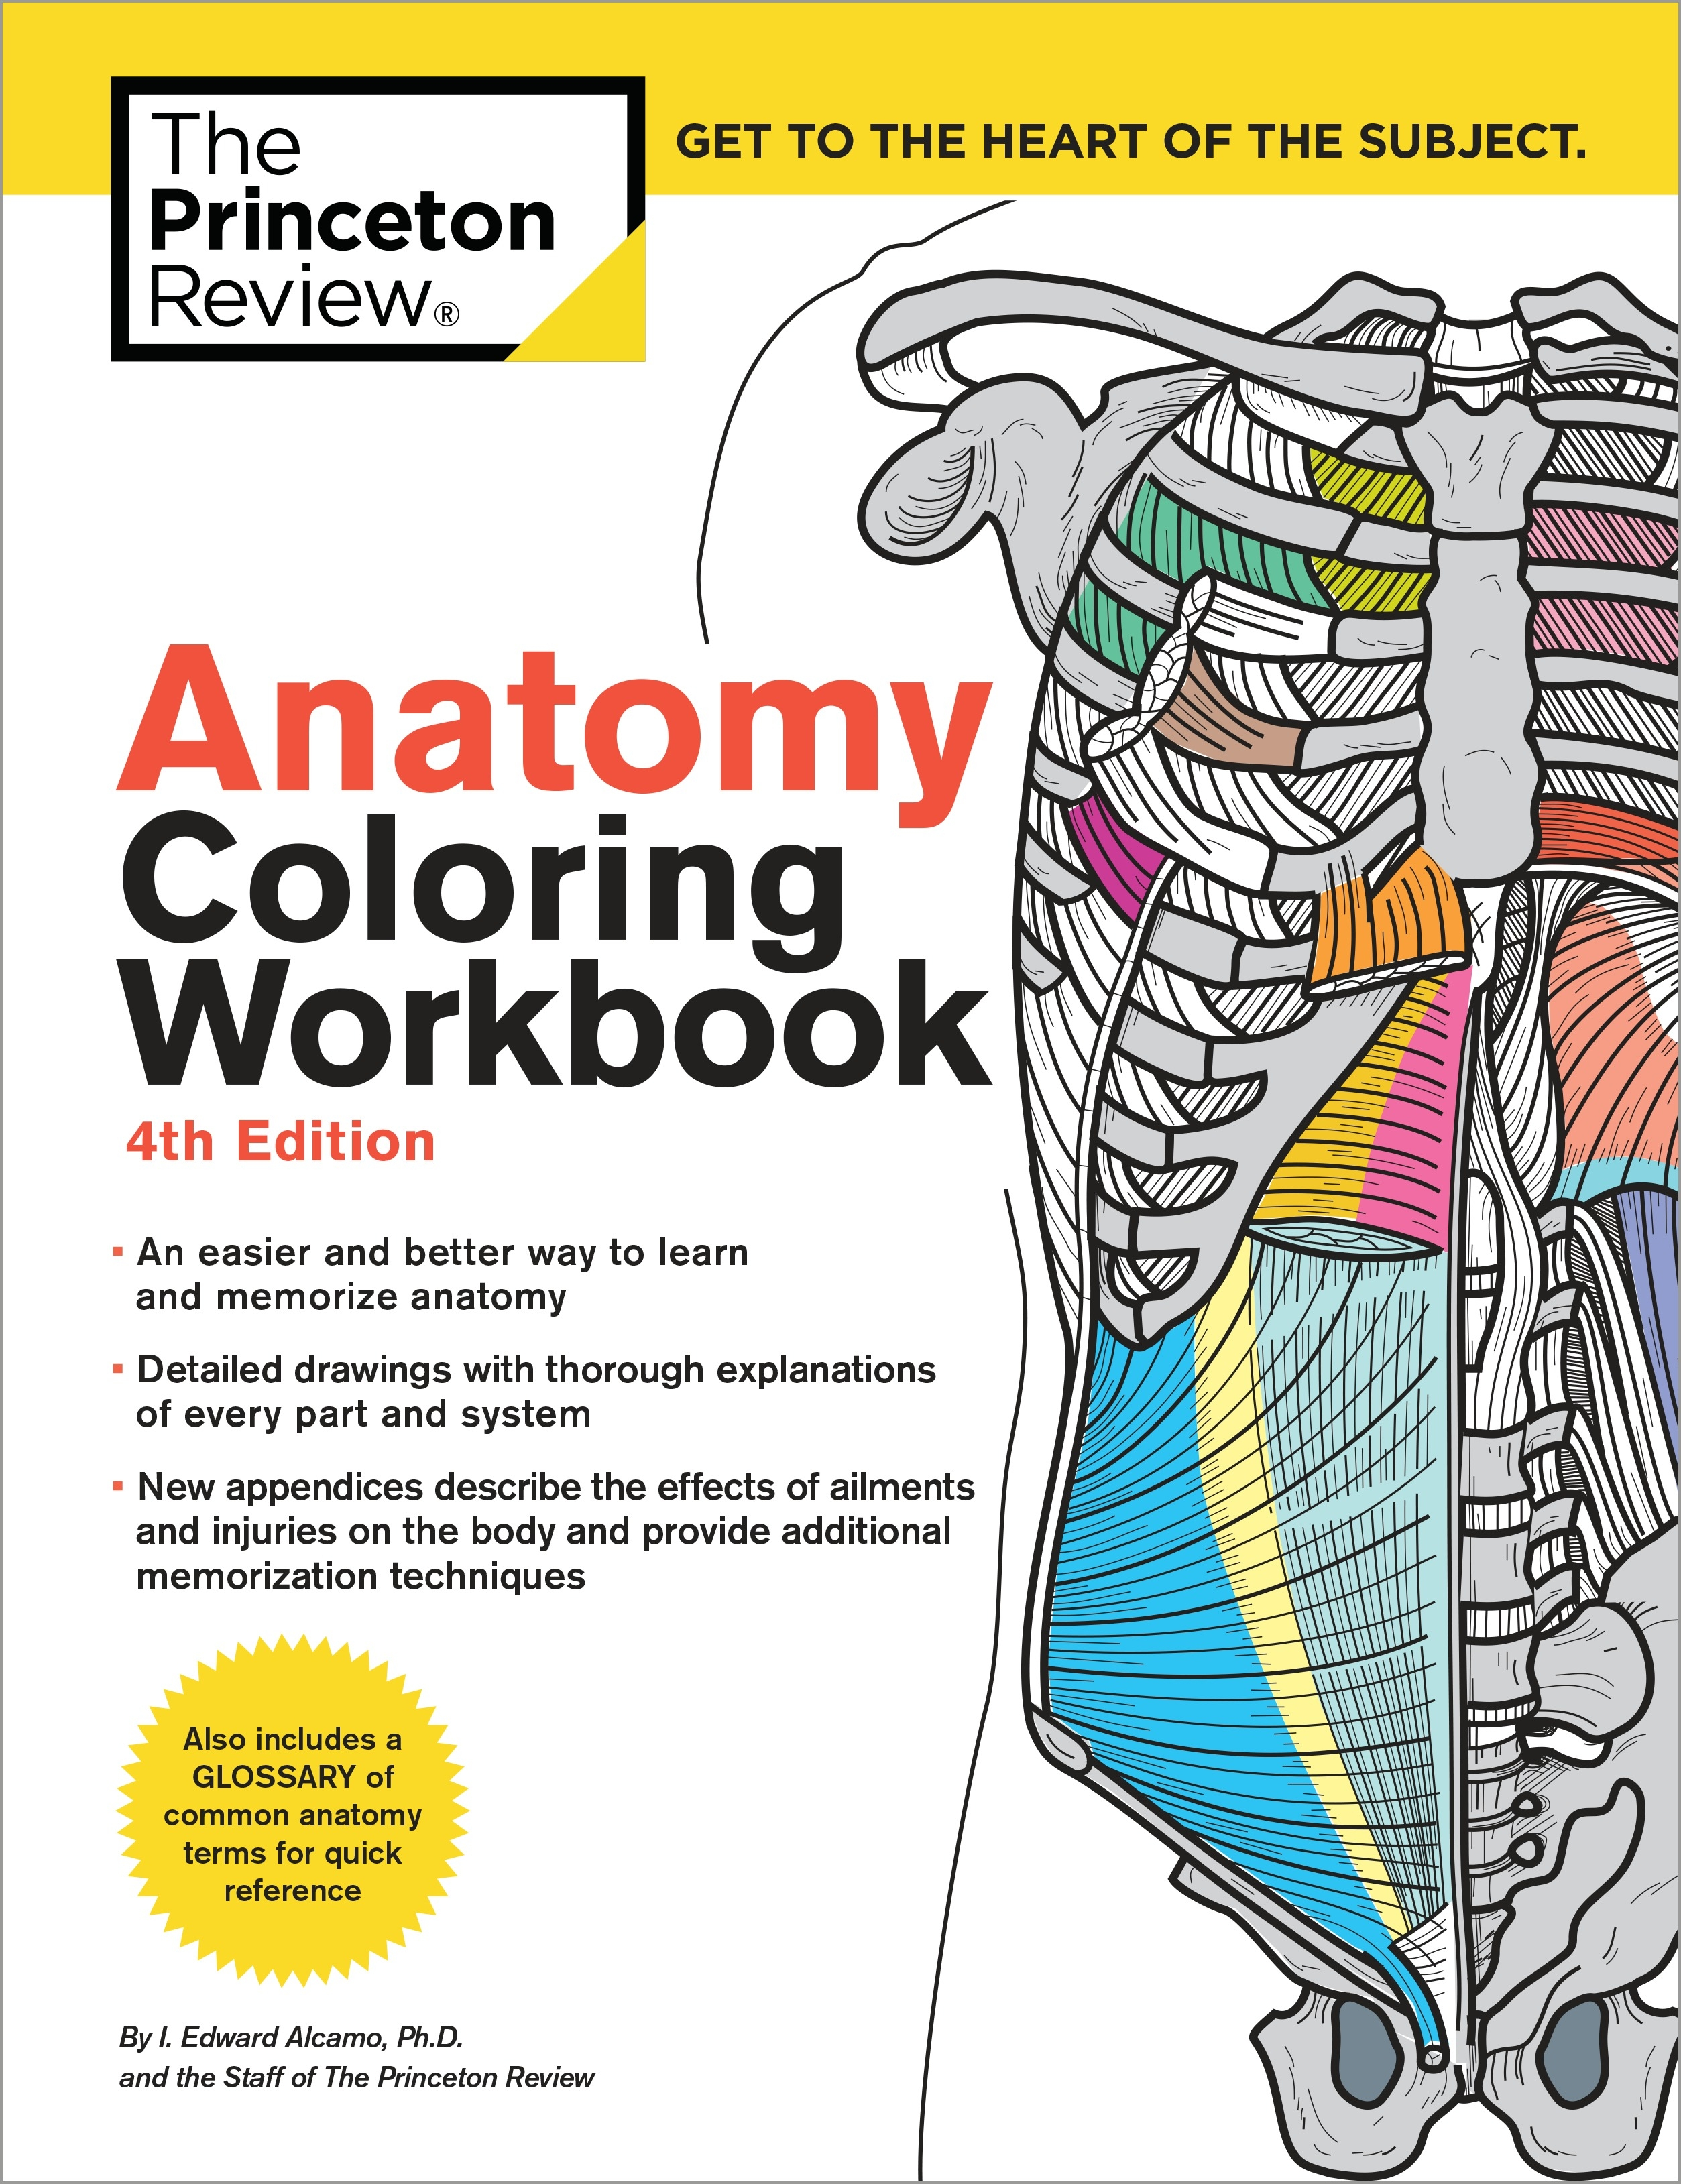 anatomy coloring book 6th edition anatomy coloring workbook 4th edition by the princeton